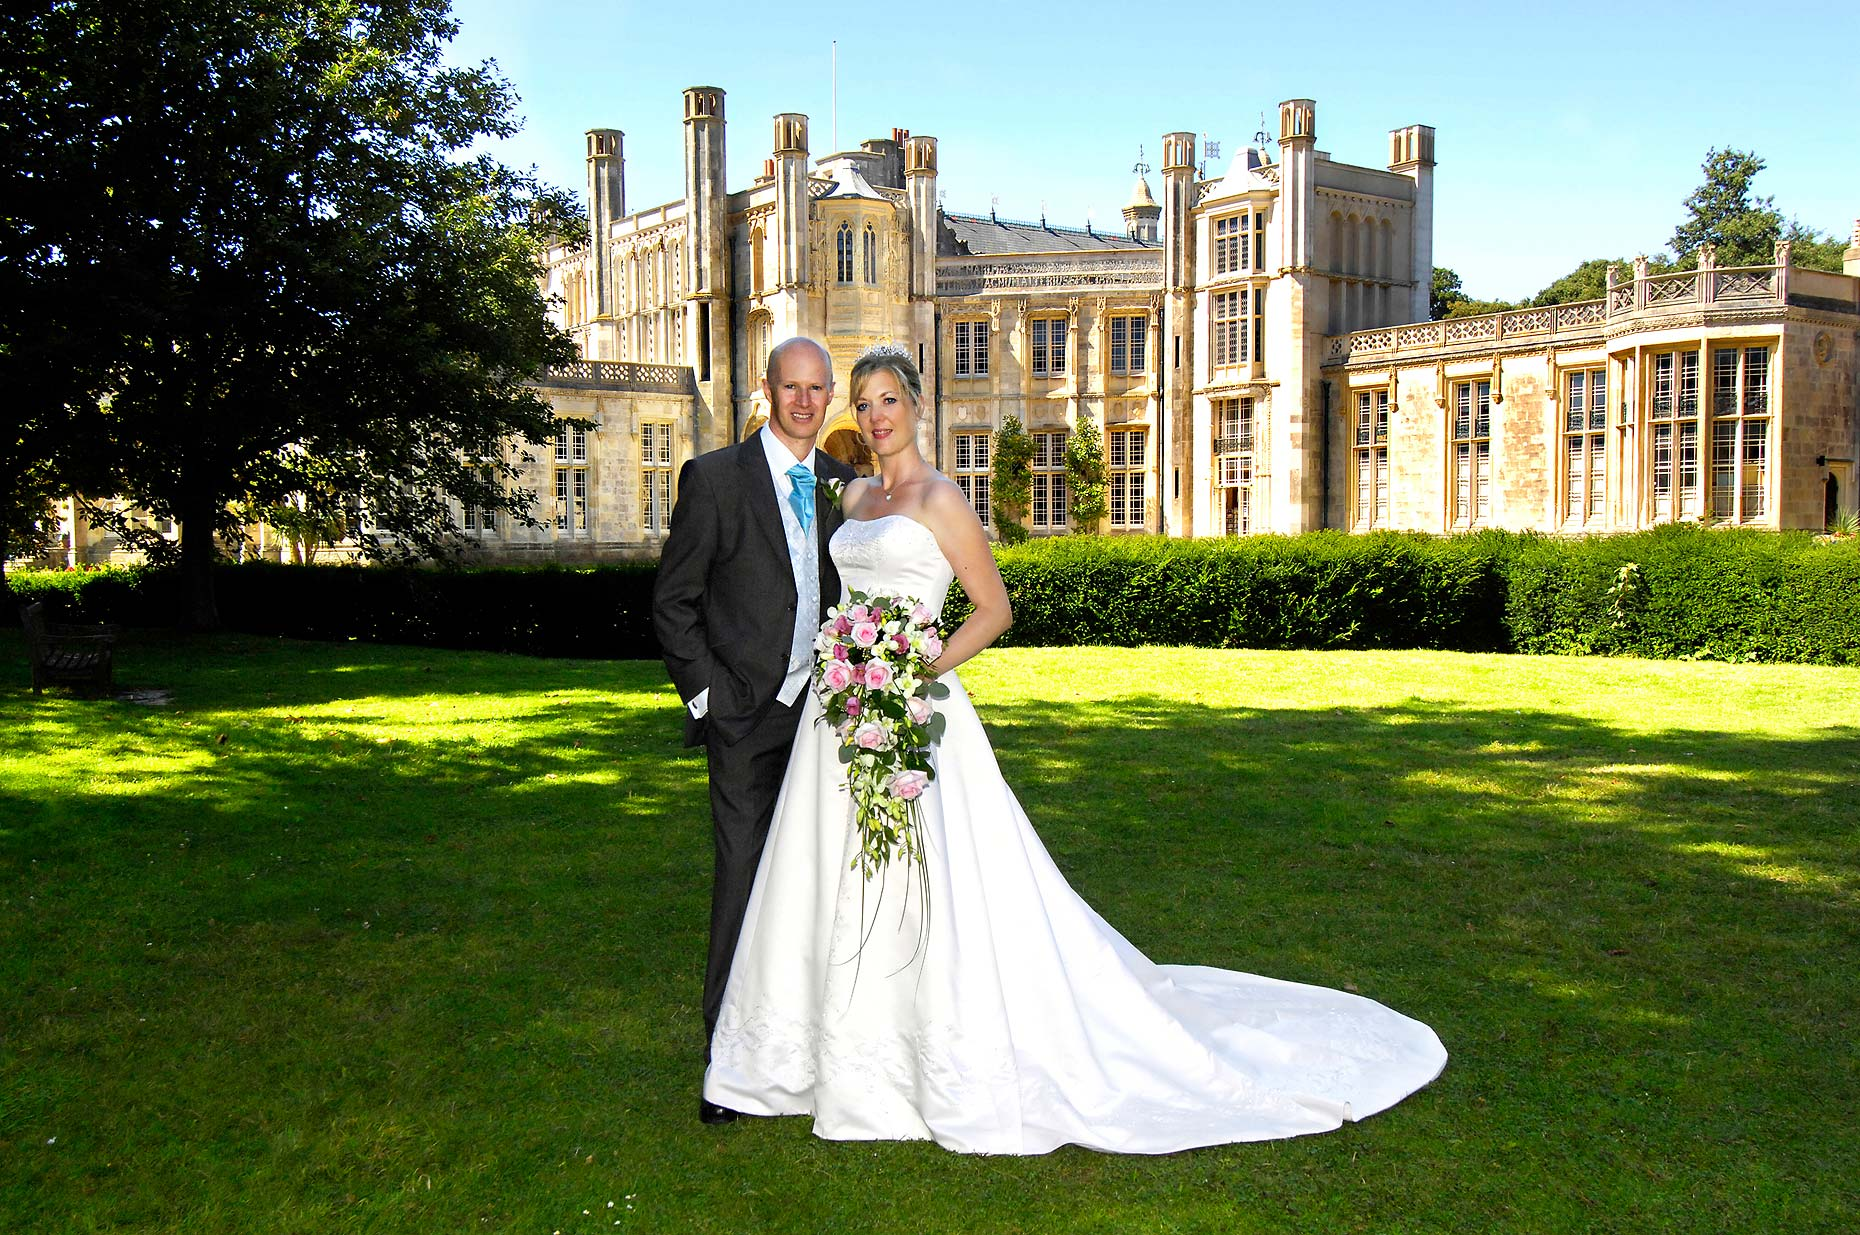 0181-Wedding-at-Highcliffe-Castle-Christchurch-Dorset-Wedding.jpg